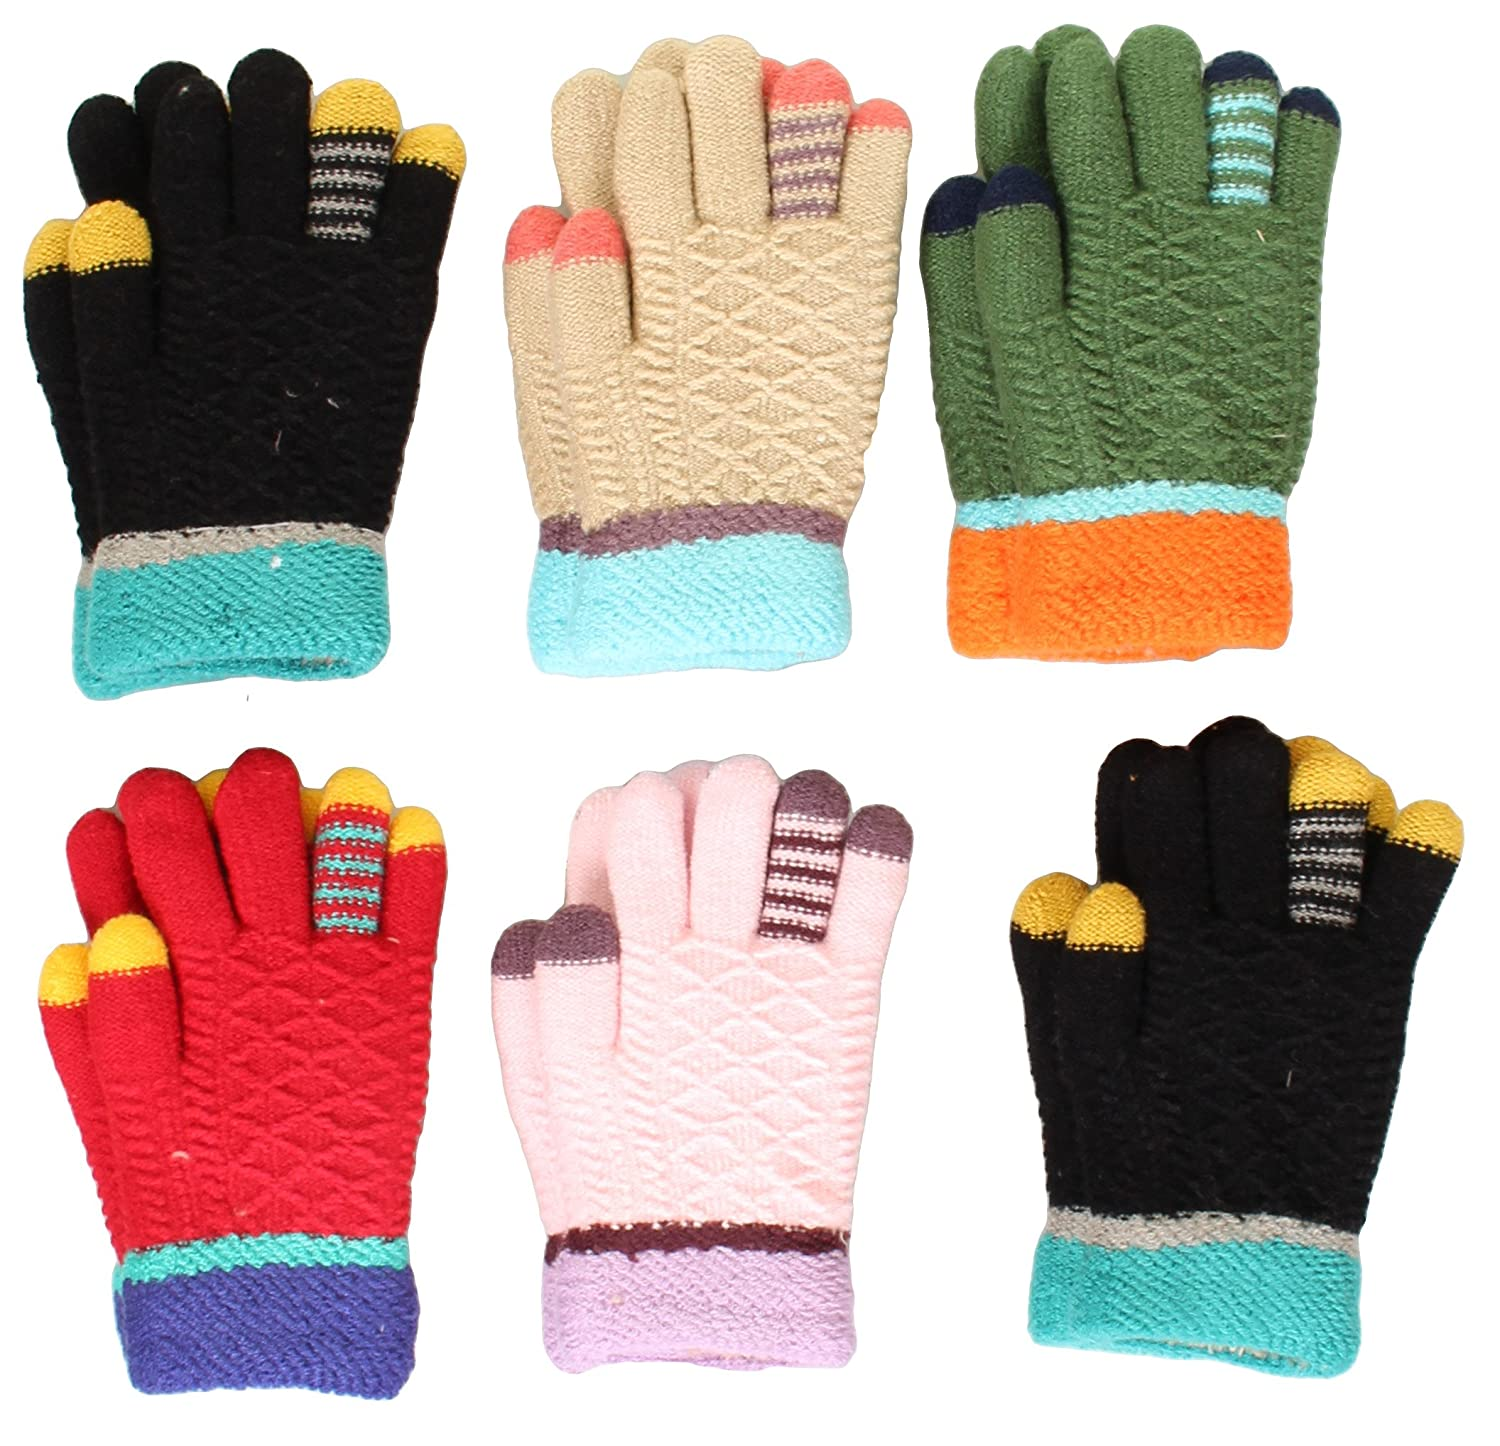 Toddler-Kids Soft And Warm Fuzzy Interior Lined Gloves 6-Pack